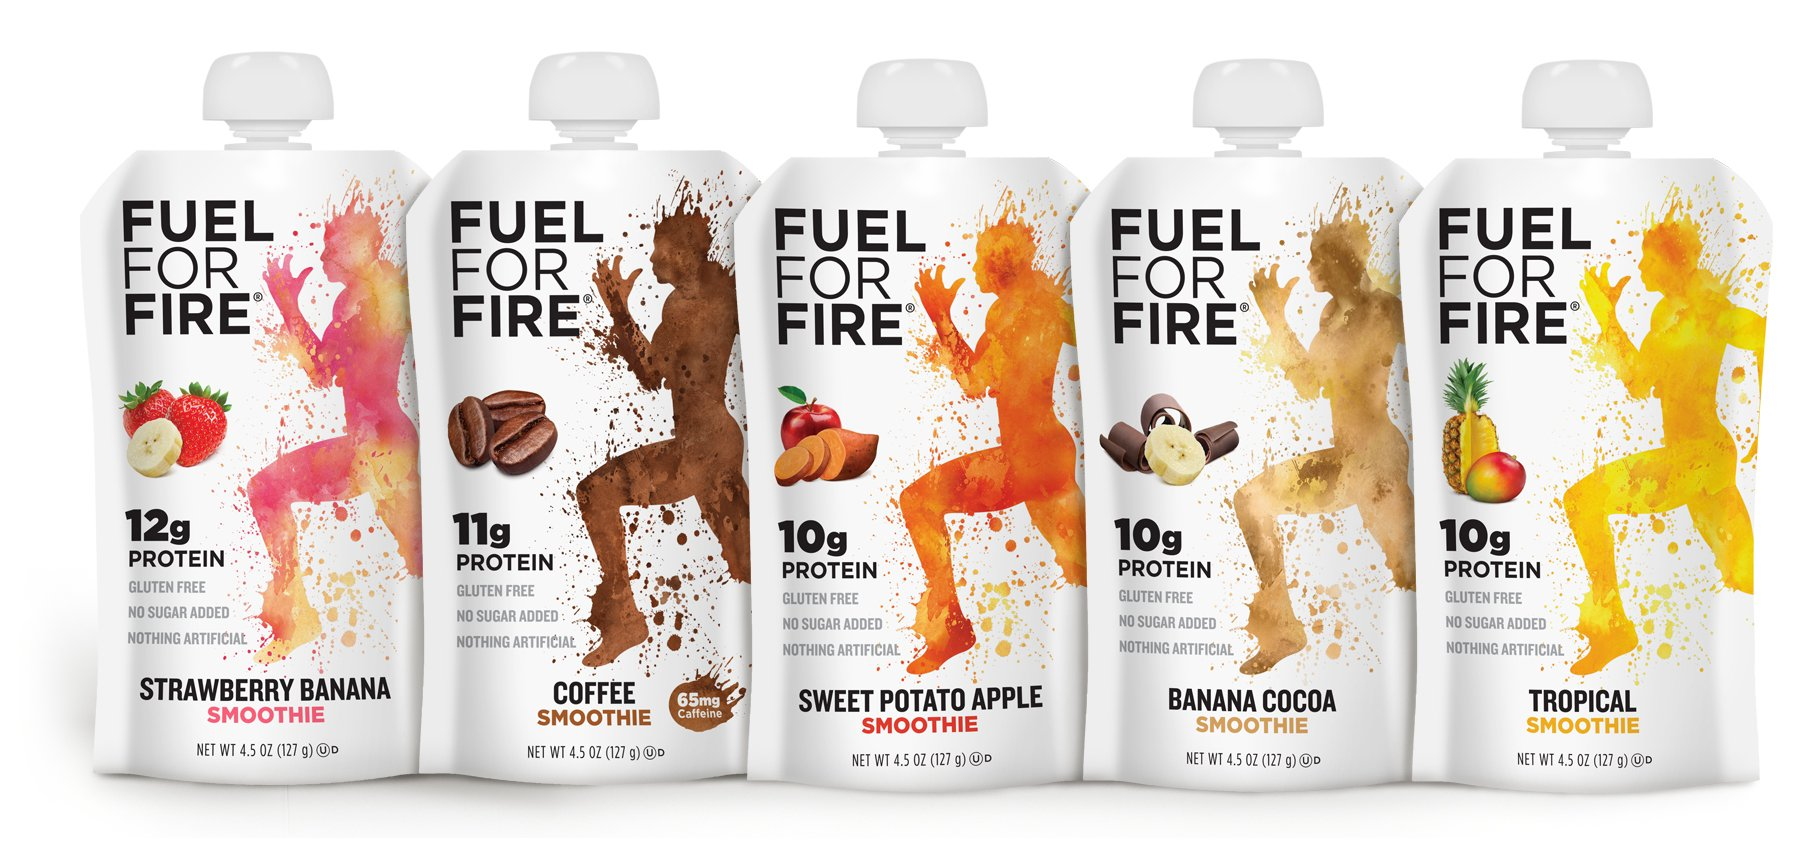 Fuel For Fire - Fruit & Protein Smoothie Squeeze Pouch 4.5 oz - 9 Ingredients - Perfect for Workouts, Kids, Snacking - Gluten-Free, Soy-Free, Kosher, No Added Sugar (Variety Pack, 10-Pack)